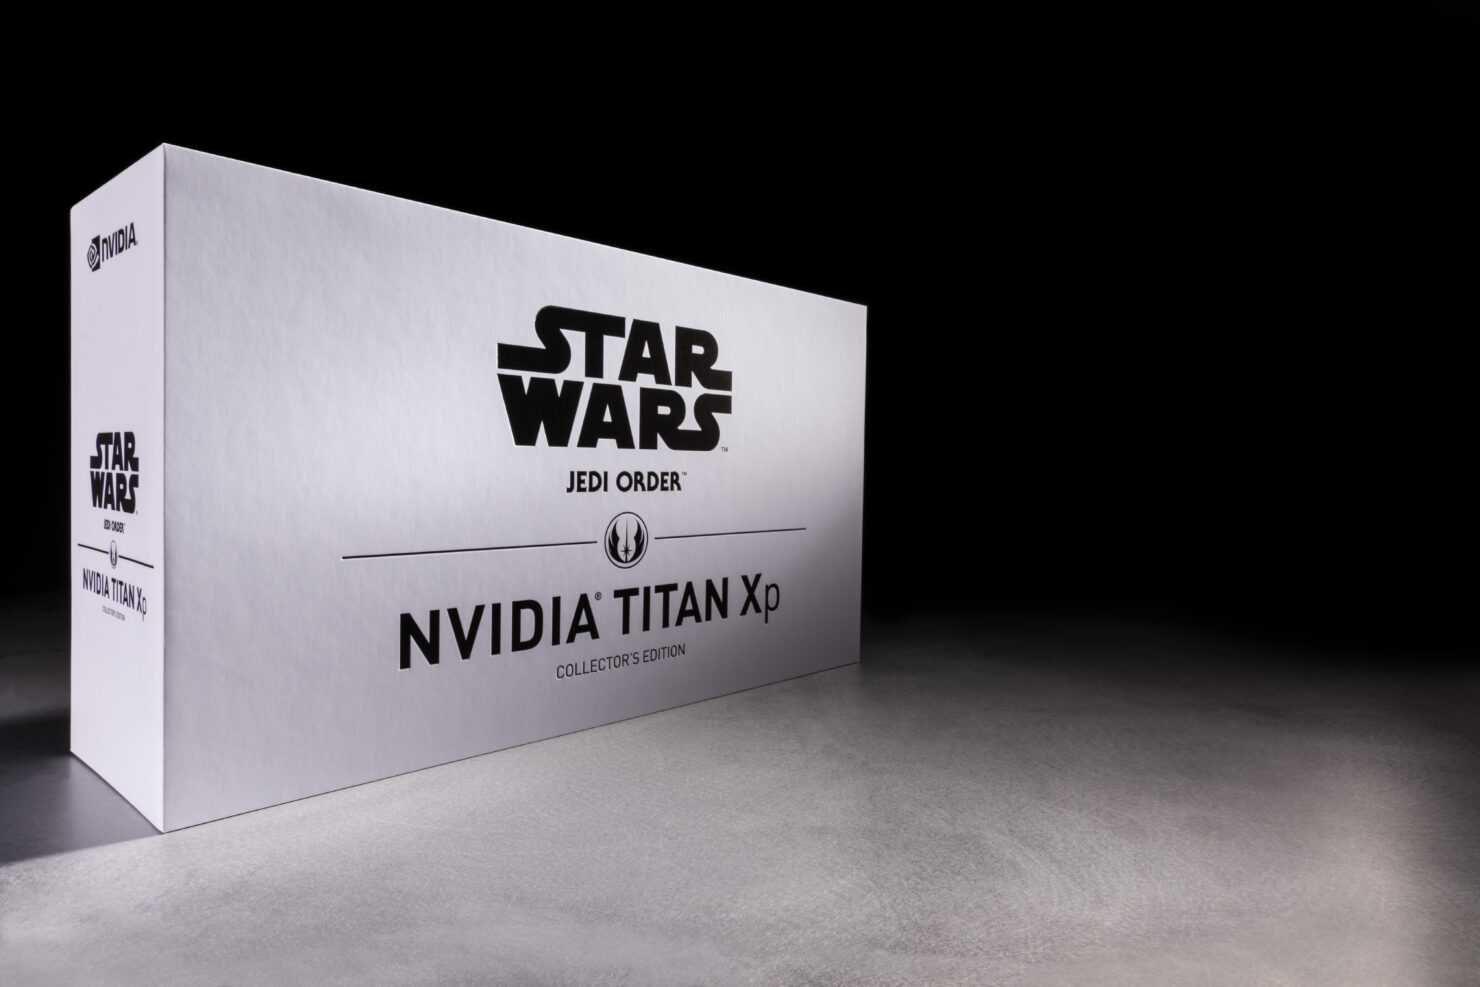 nvidia-geforce-titan-xp-star-wars-collectors-edition-jedi-order-packaging-photo-003